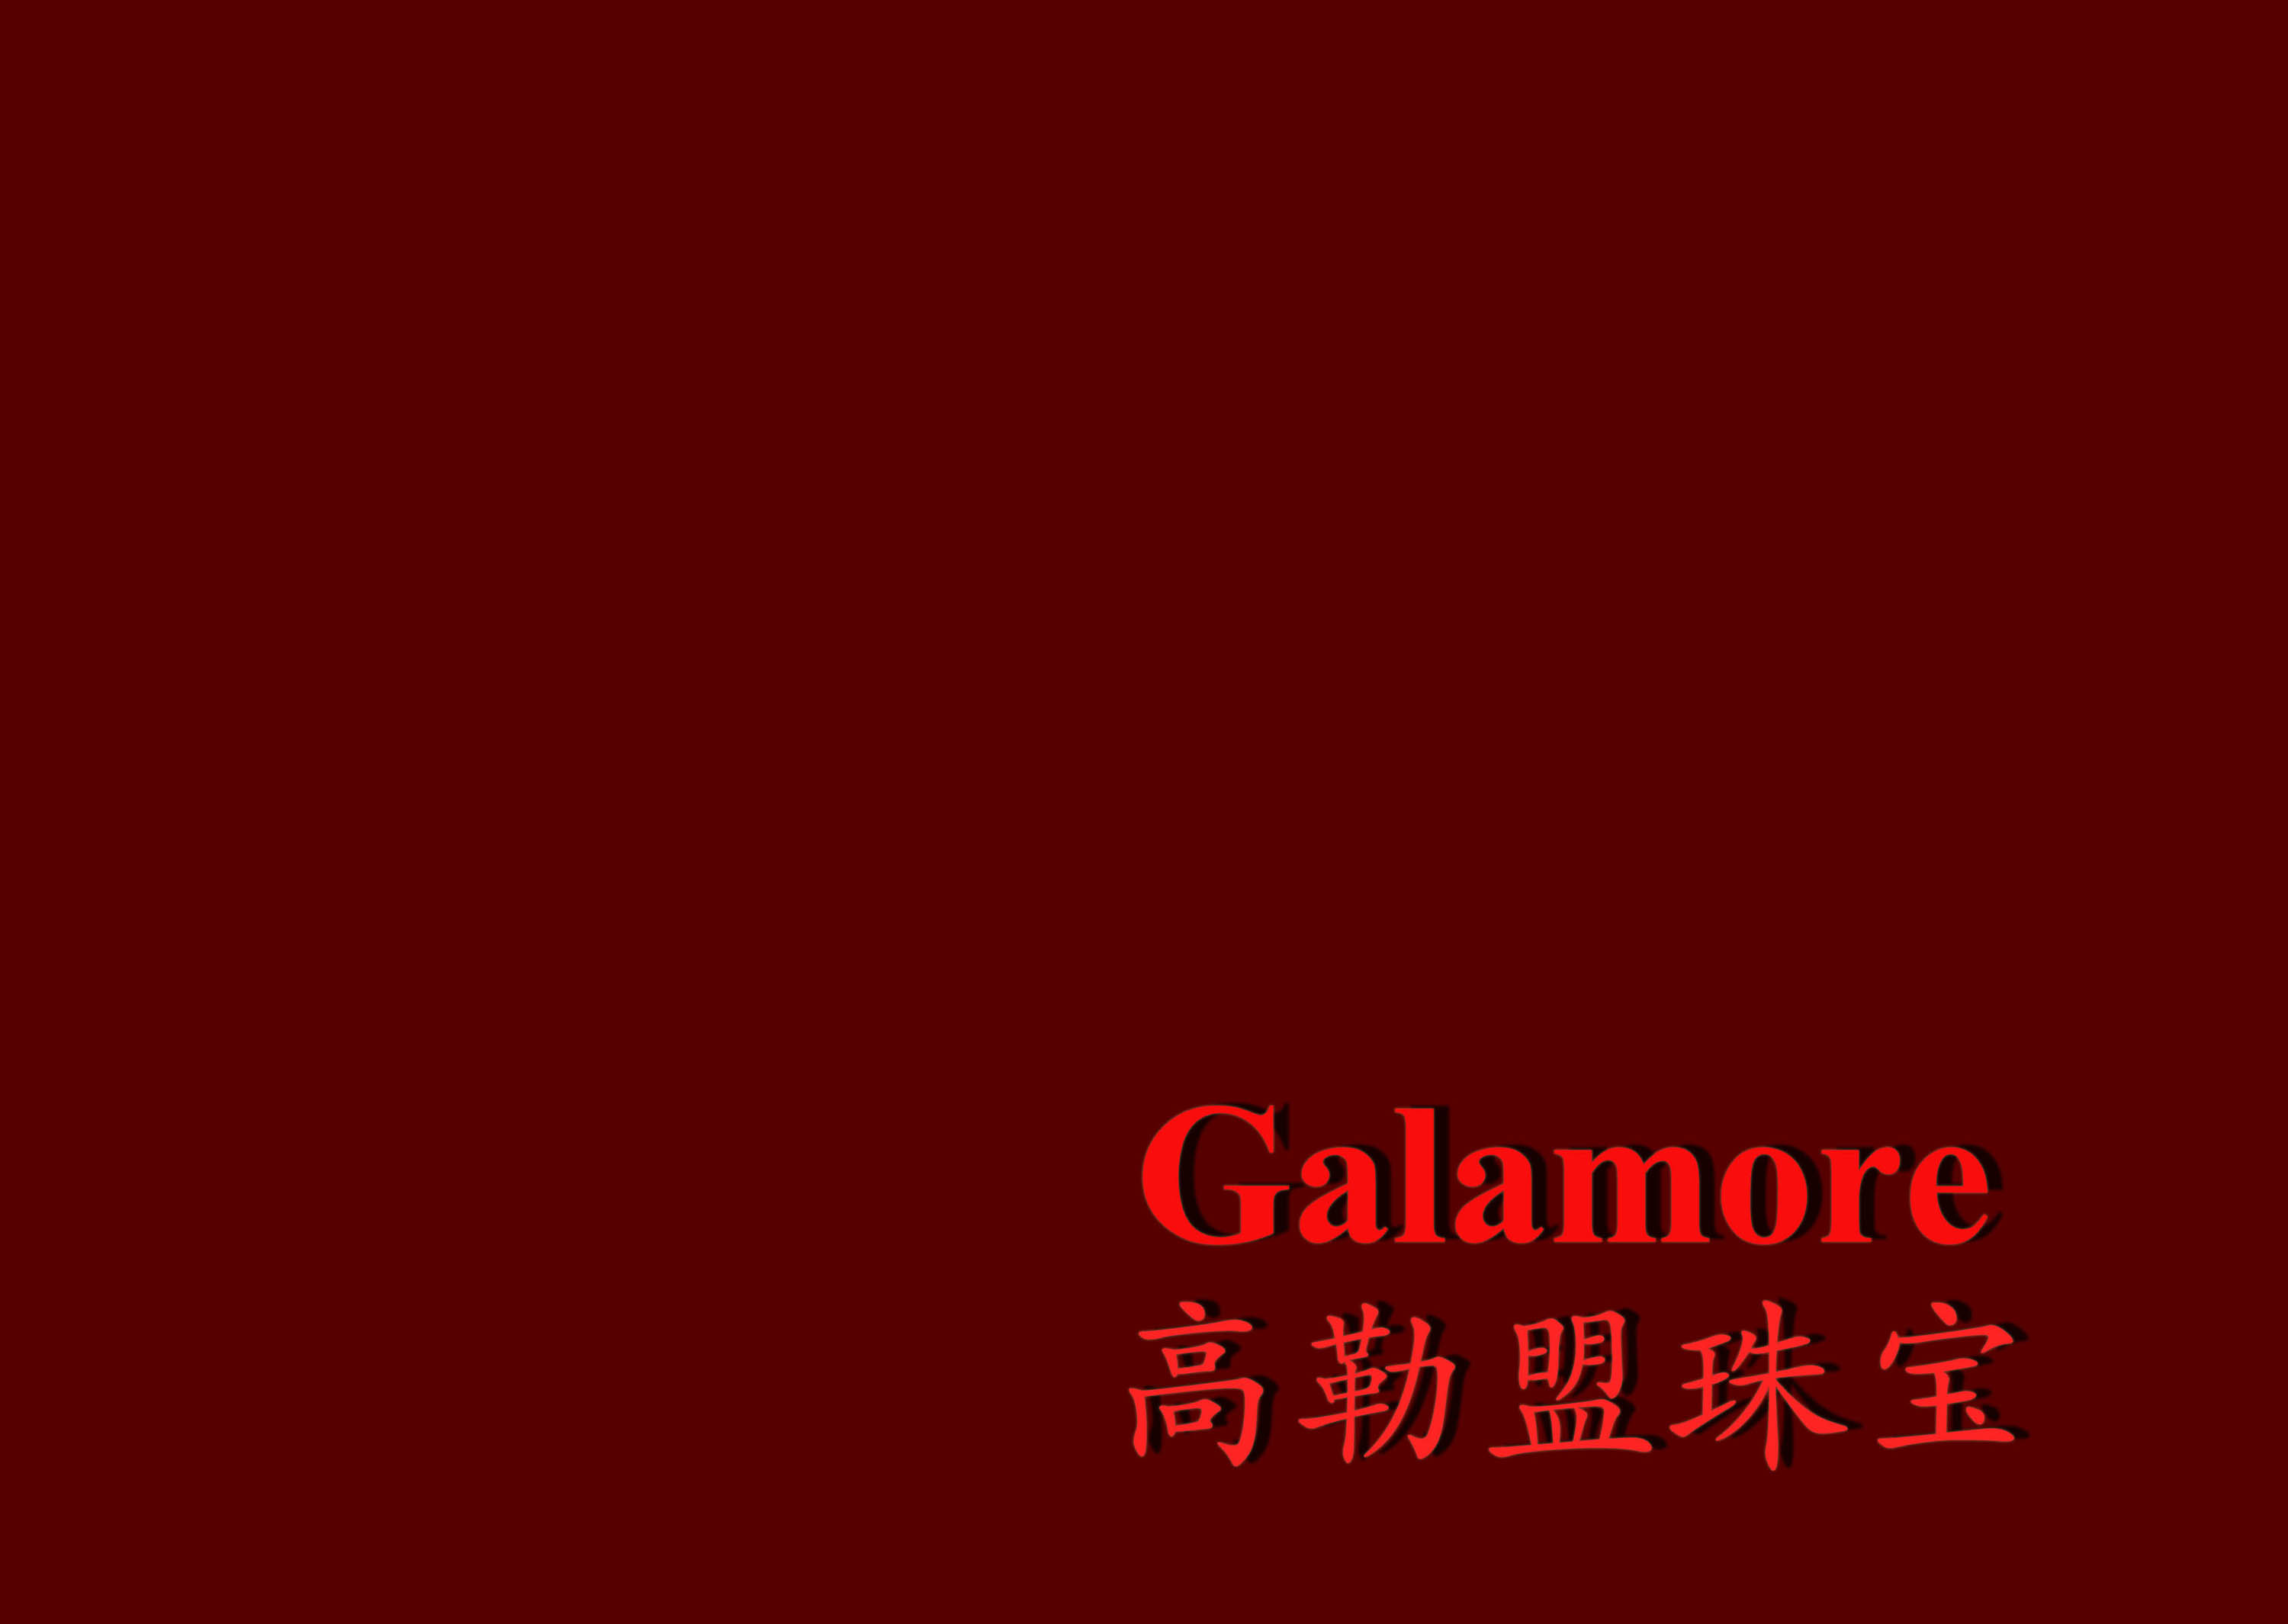 Galamore Jewellery Co., Ltd.